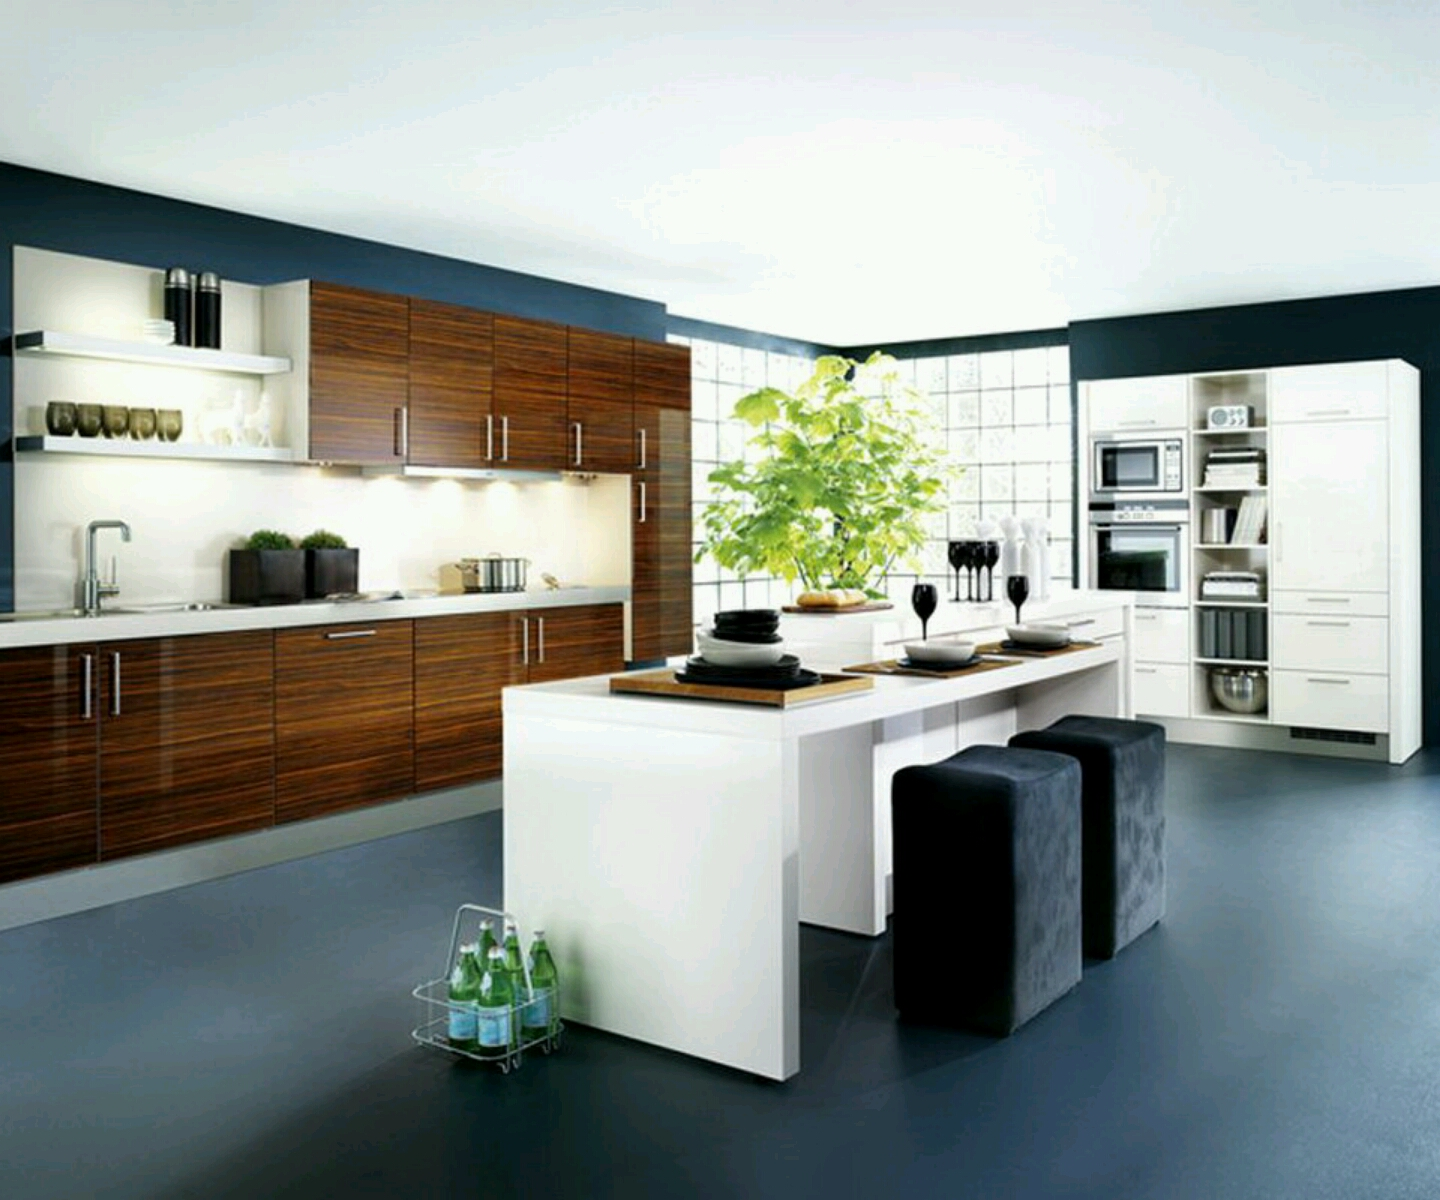 New home designs latest kitchen cabinets designs modern for Kitchen design ideas modern